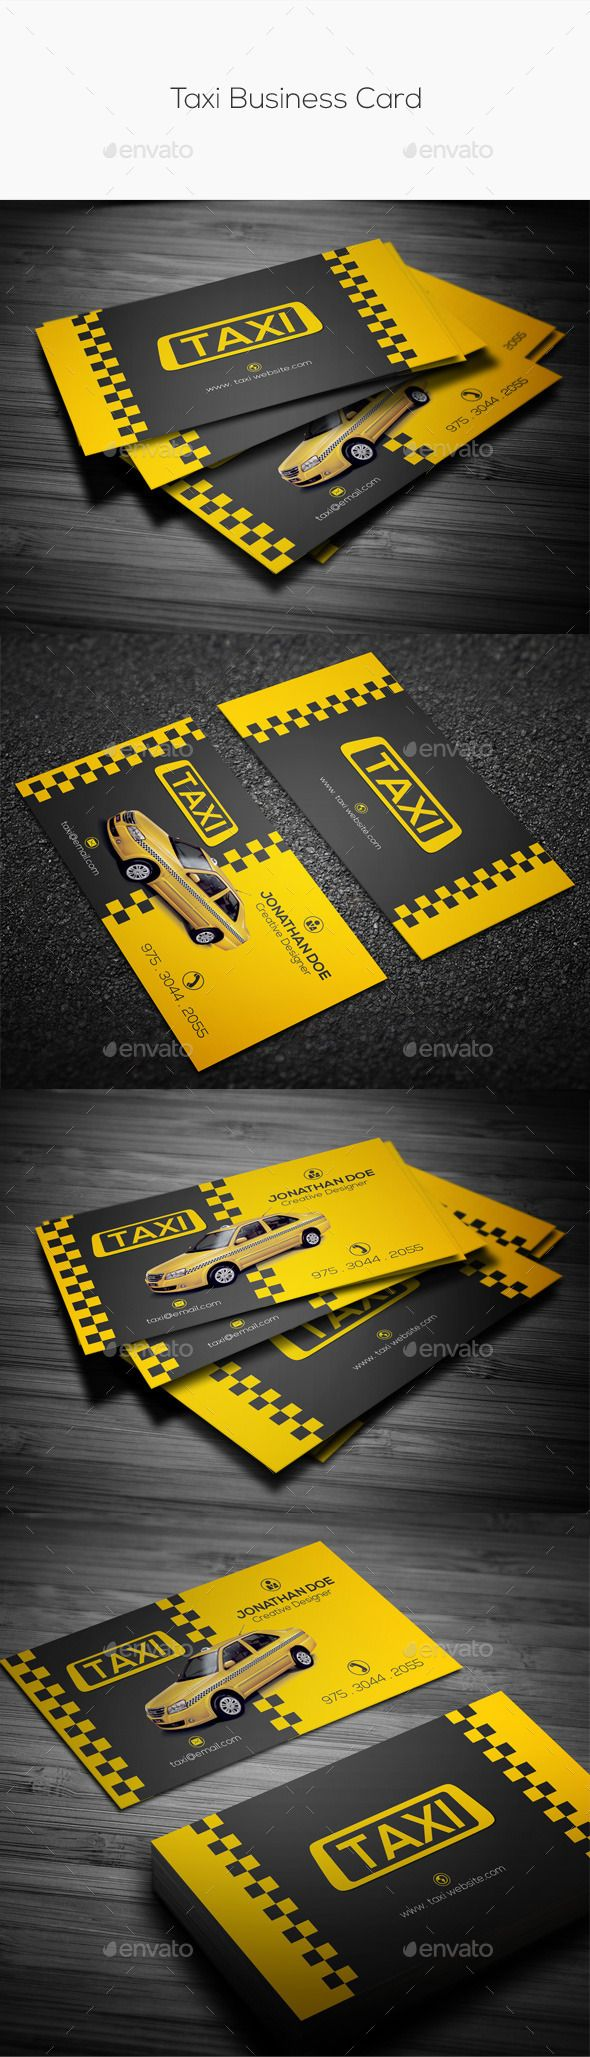 1676 best Best Business Cards on Pinterest images on Pinterest ...